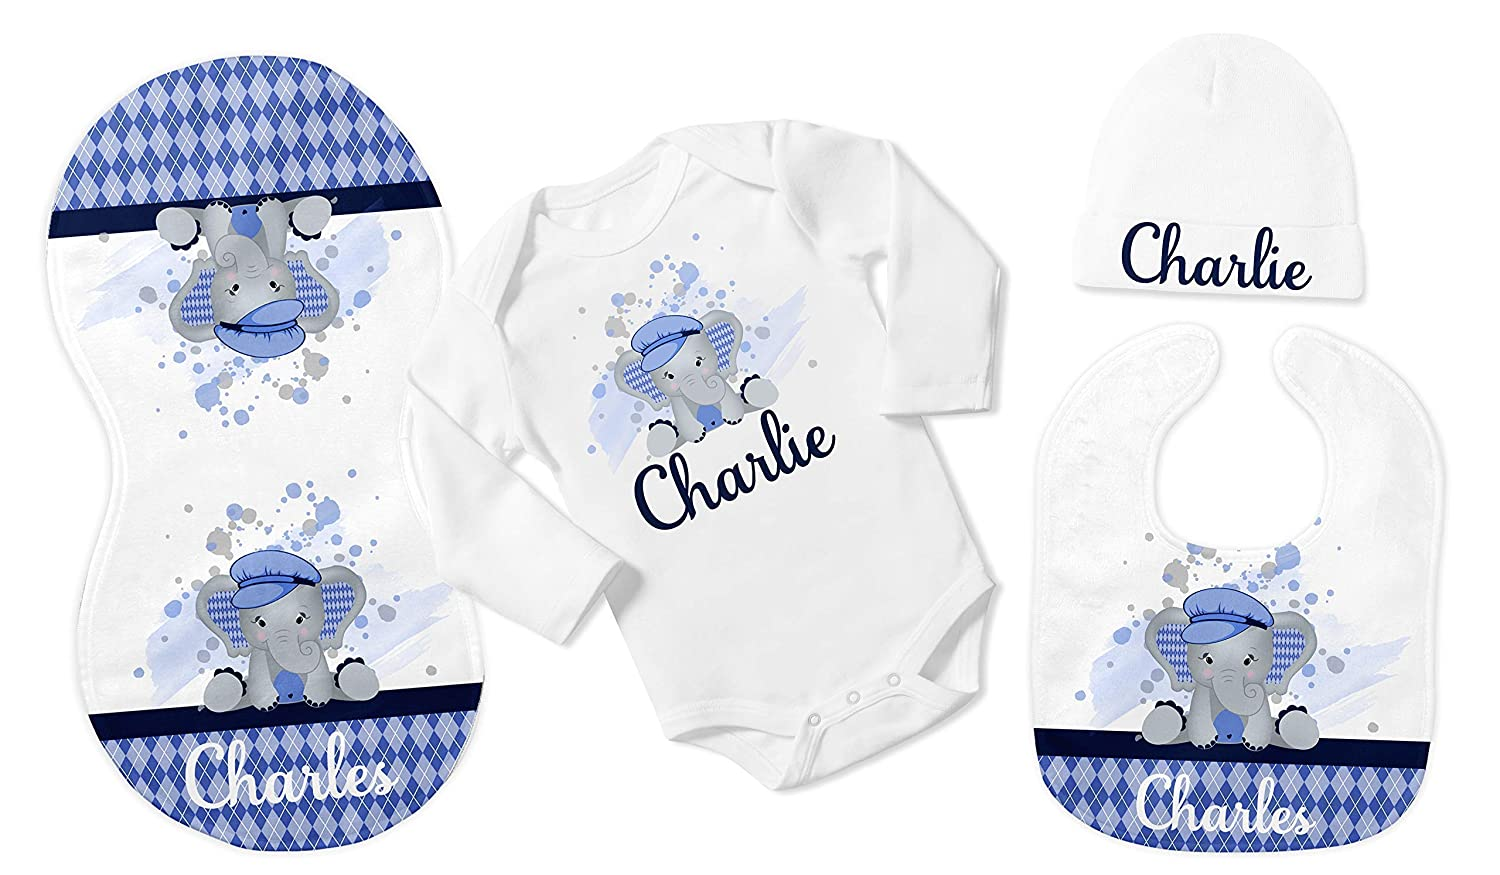 c296b732c Amazon.com: New Baby Boy's White with Blue Argyle Elephant Personalized  Infant Bodysuit with Black Coming Home Outfit: Handmade